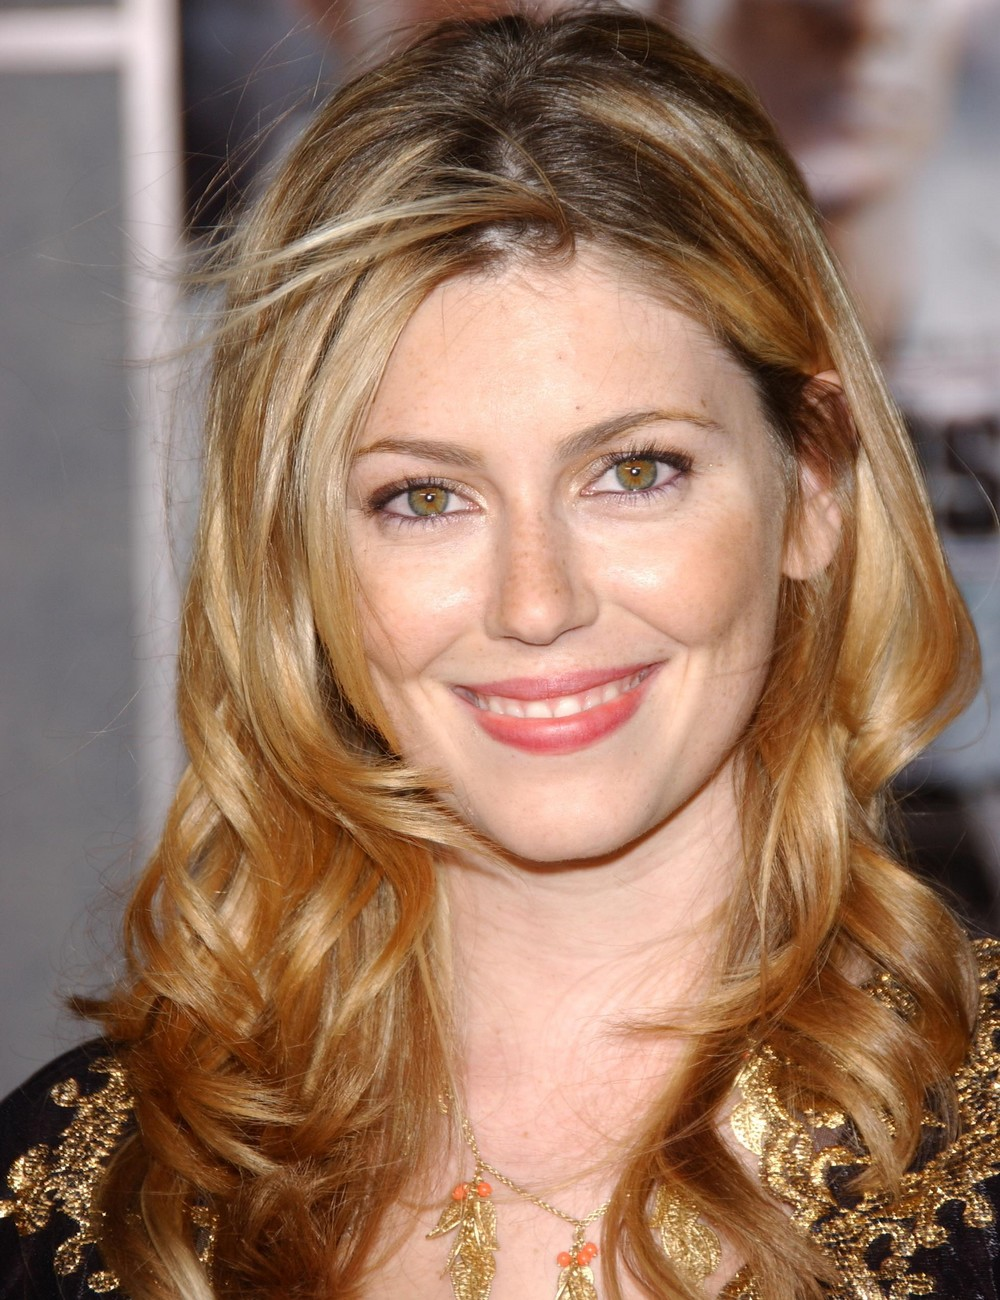 Celebrity Diora Baird naked (56 foto and video), Tits, Hot, Selfie, panties 2019